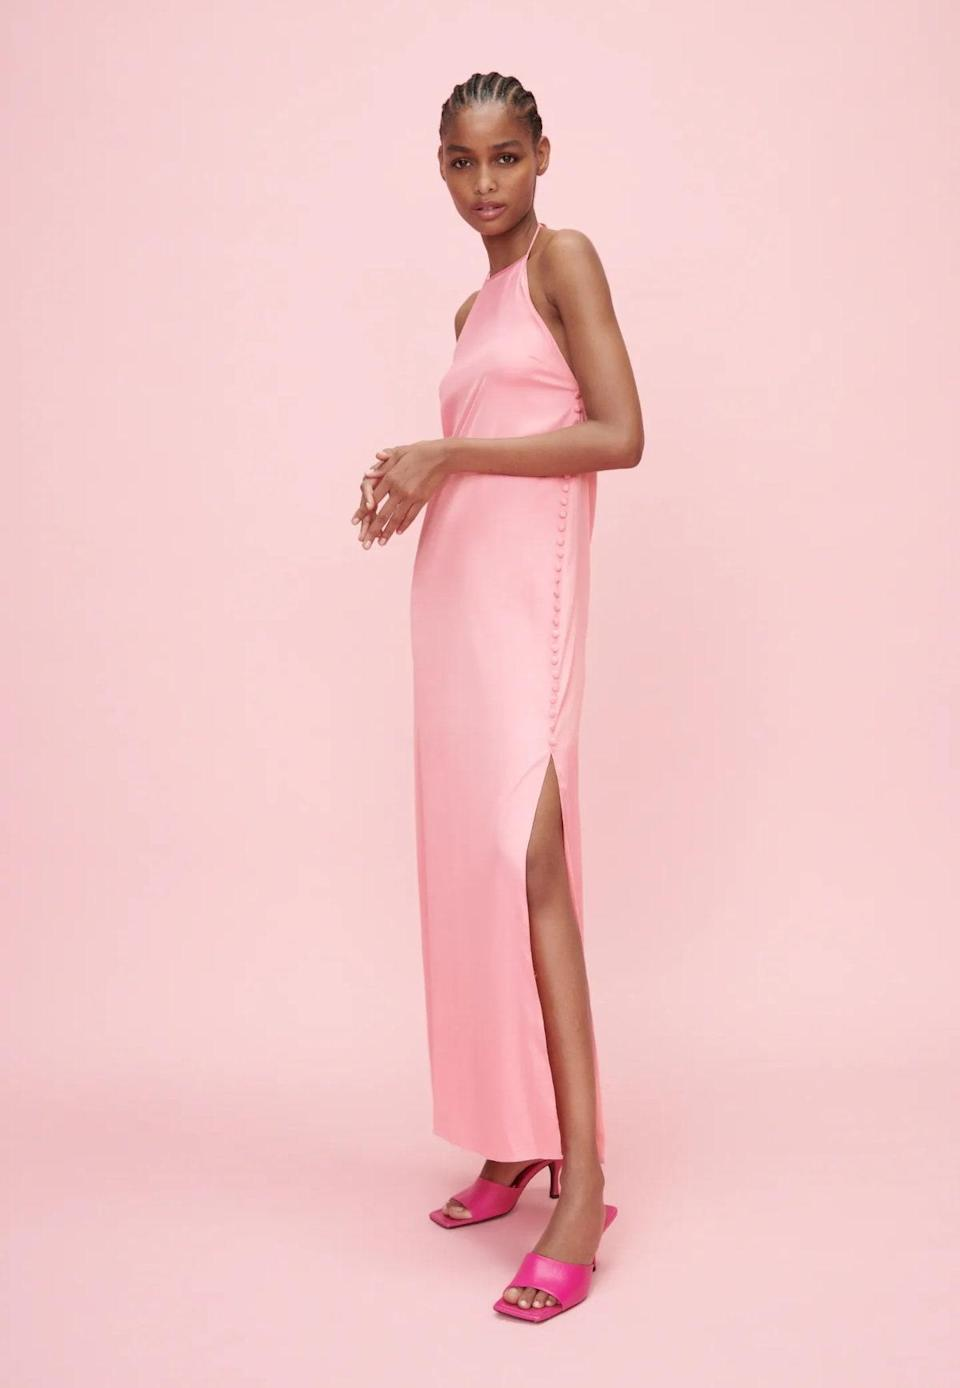 """Next up is this wispy number that looks way more expensive than the price tag would have you believe, thanks to the minimal cut and airy fit. (Those tiny side buttons are everything!) $46, Zara. <a href=""""https://www.zara.com/us/en/satin-effect-buttoned-dress-p04886421.html?v1=113470795"""" rel=""""nofollow noopener"""" target=""""_blank"""" data-ylk=""""slk:Get it now!"""" class=""""link rapid-noclick-resp"""">Get it now!</a>"""